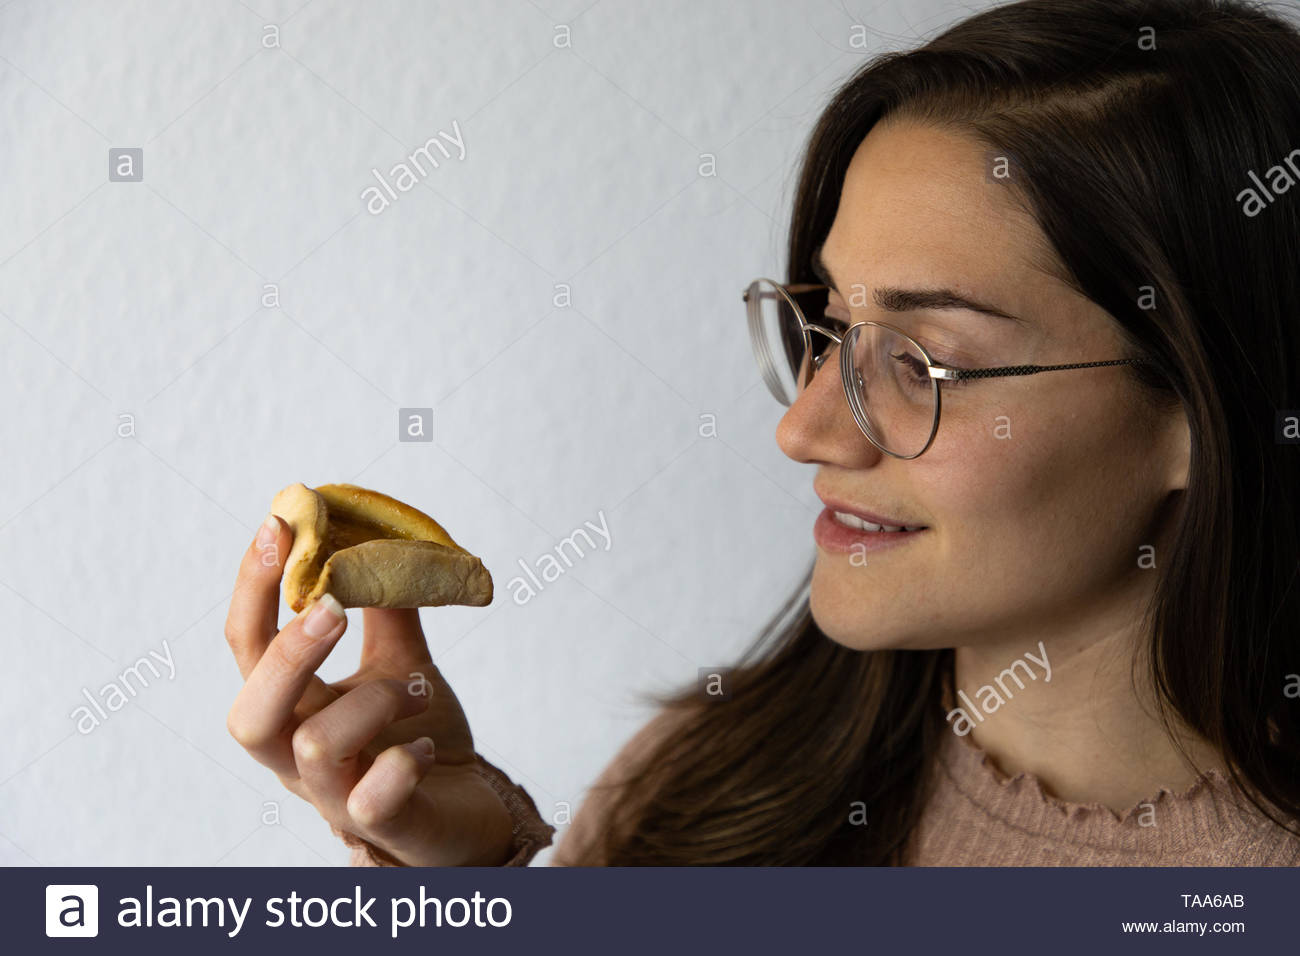 Beautiful and happy women portrait eating hamantash Purim apricot cookie Stock Photo